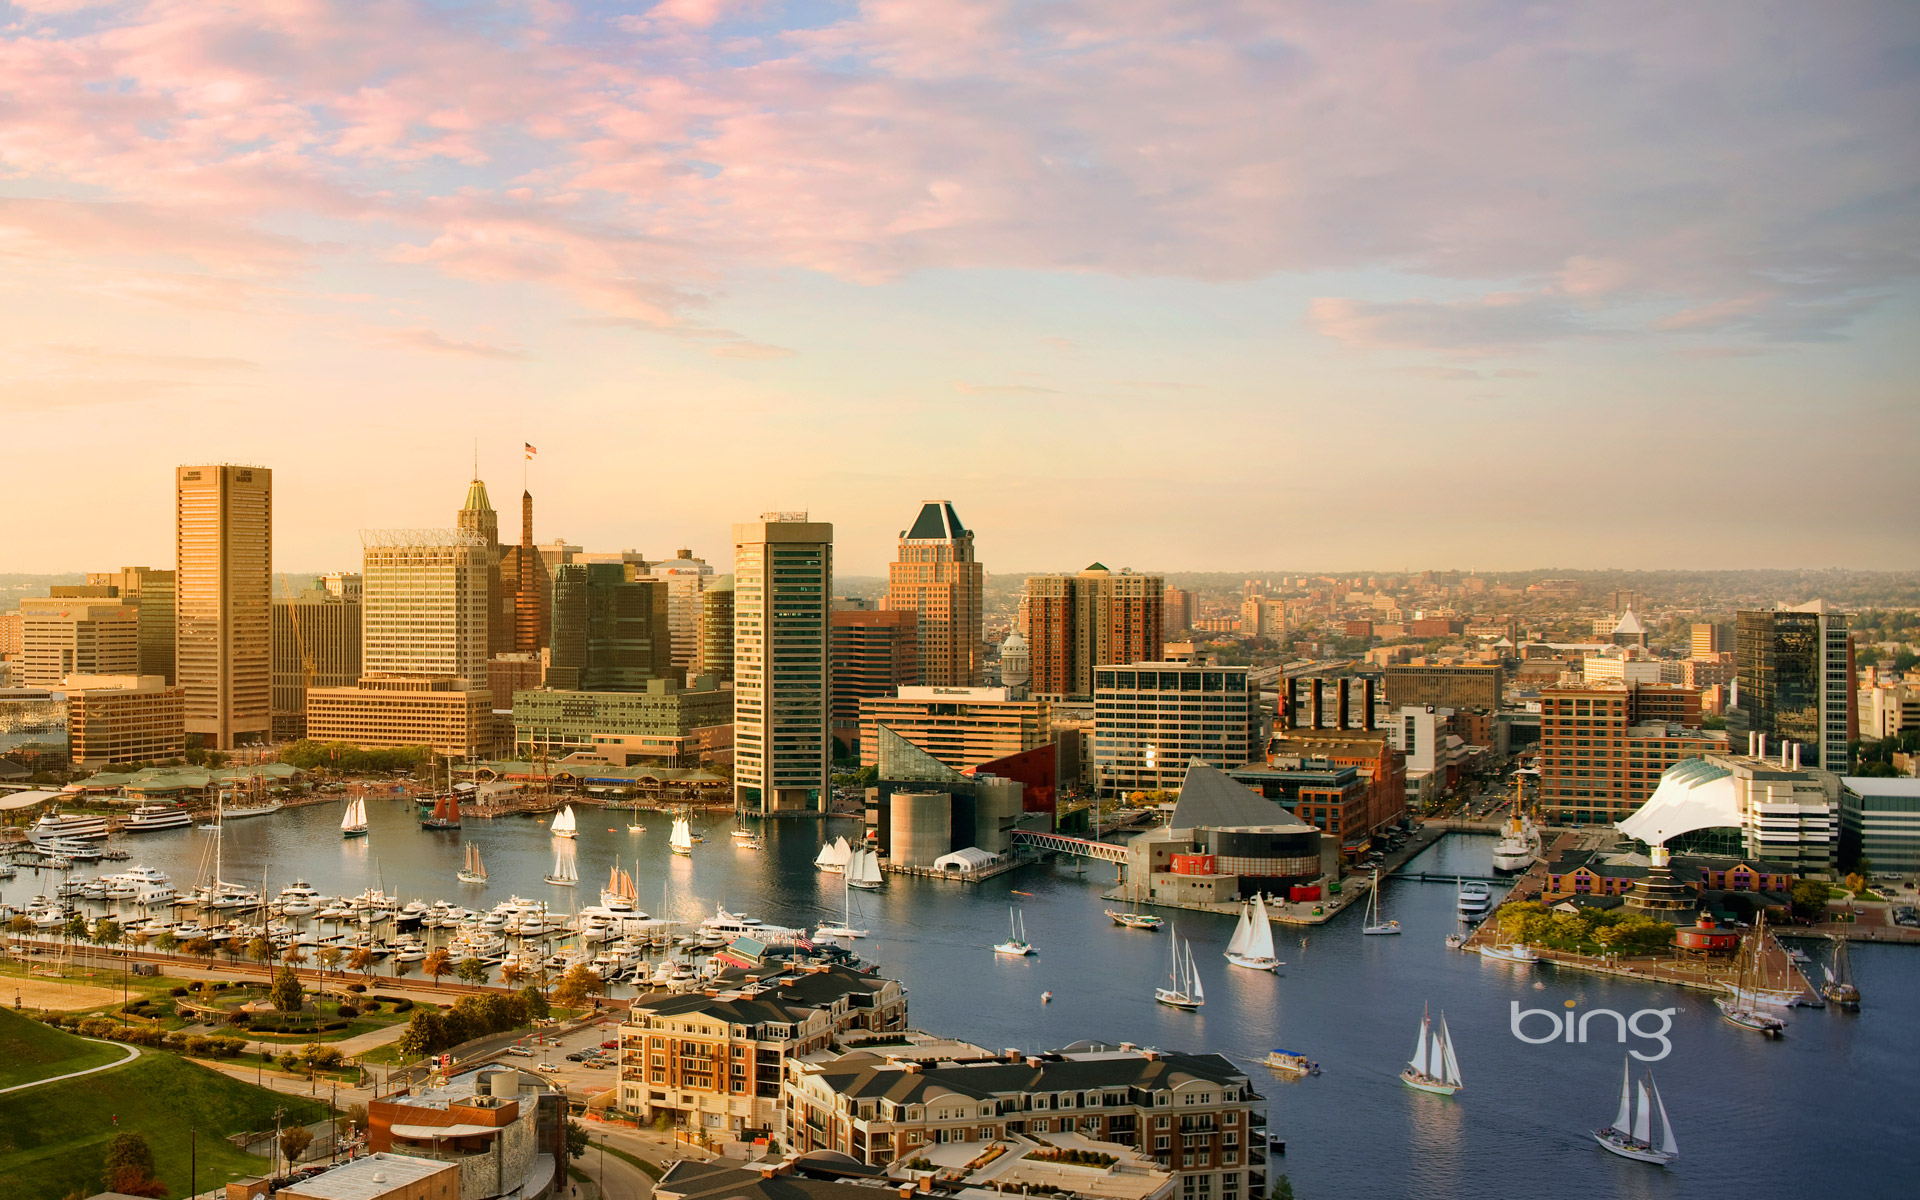 Baltimore skyline and the Inner Harbor, Maryland